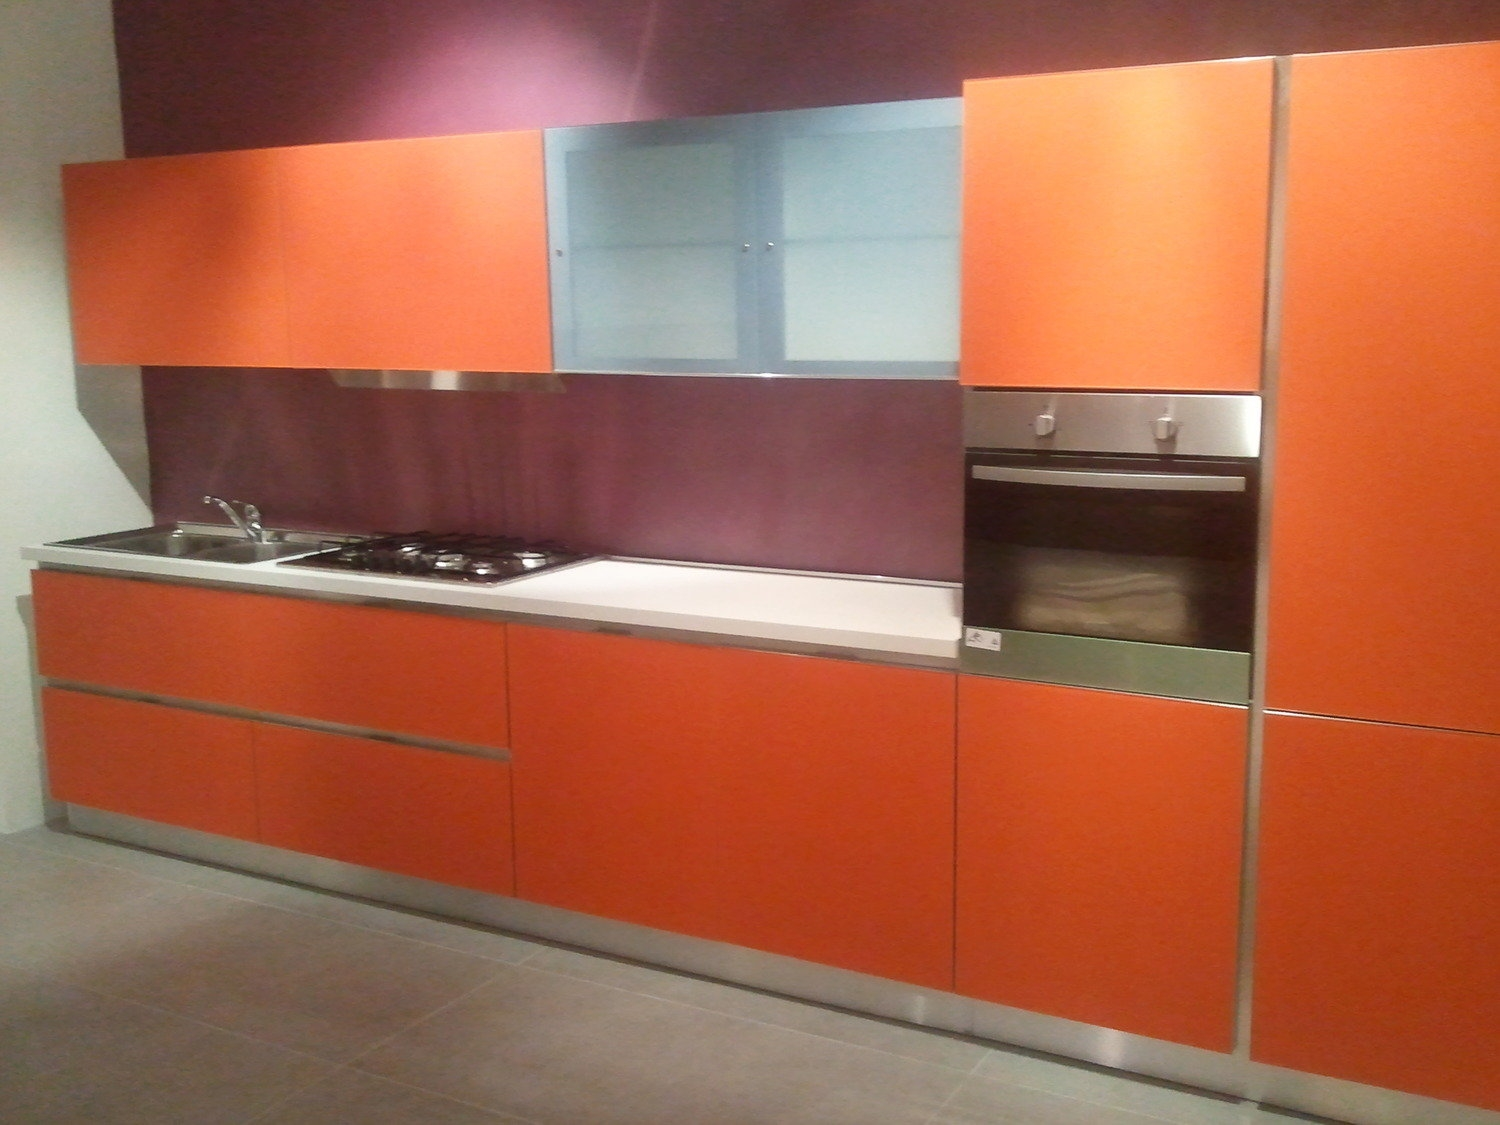 Schienale cucina in vetro gallery of start slideshow with - Schienale cucina in vetro temperato ...